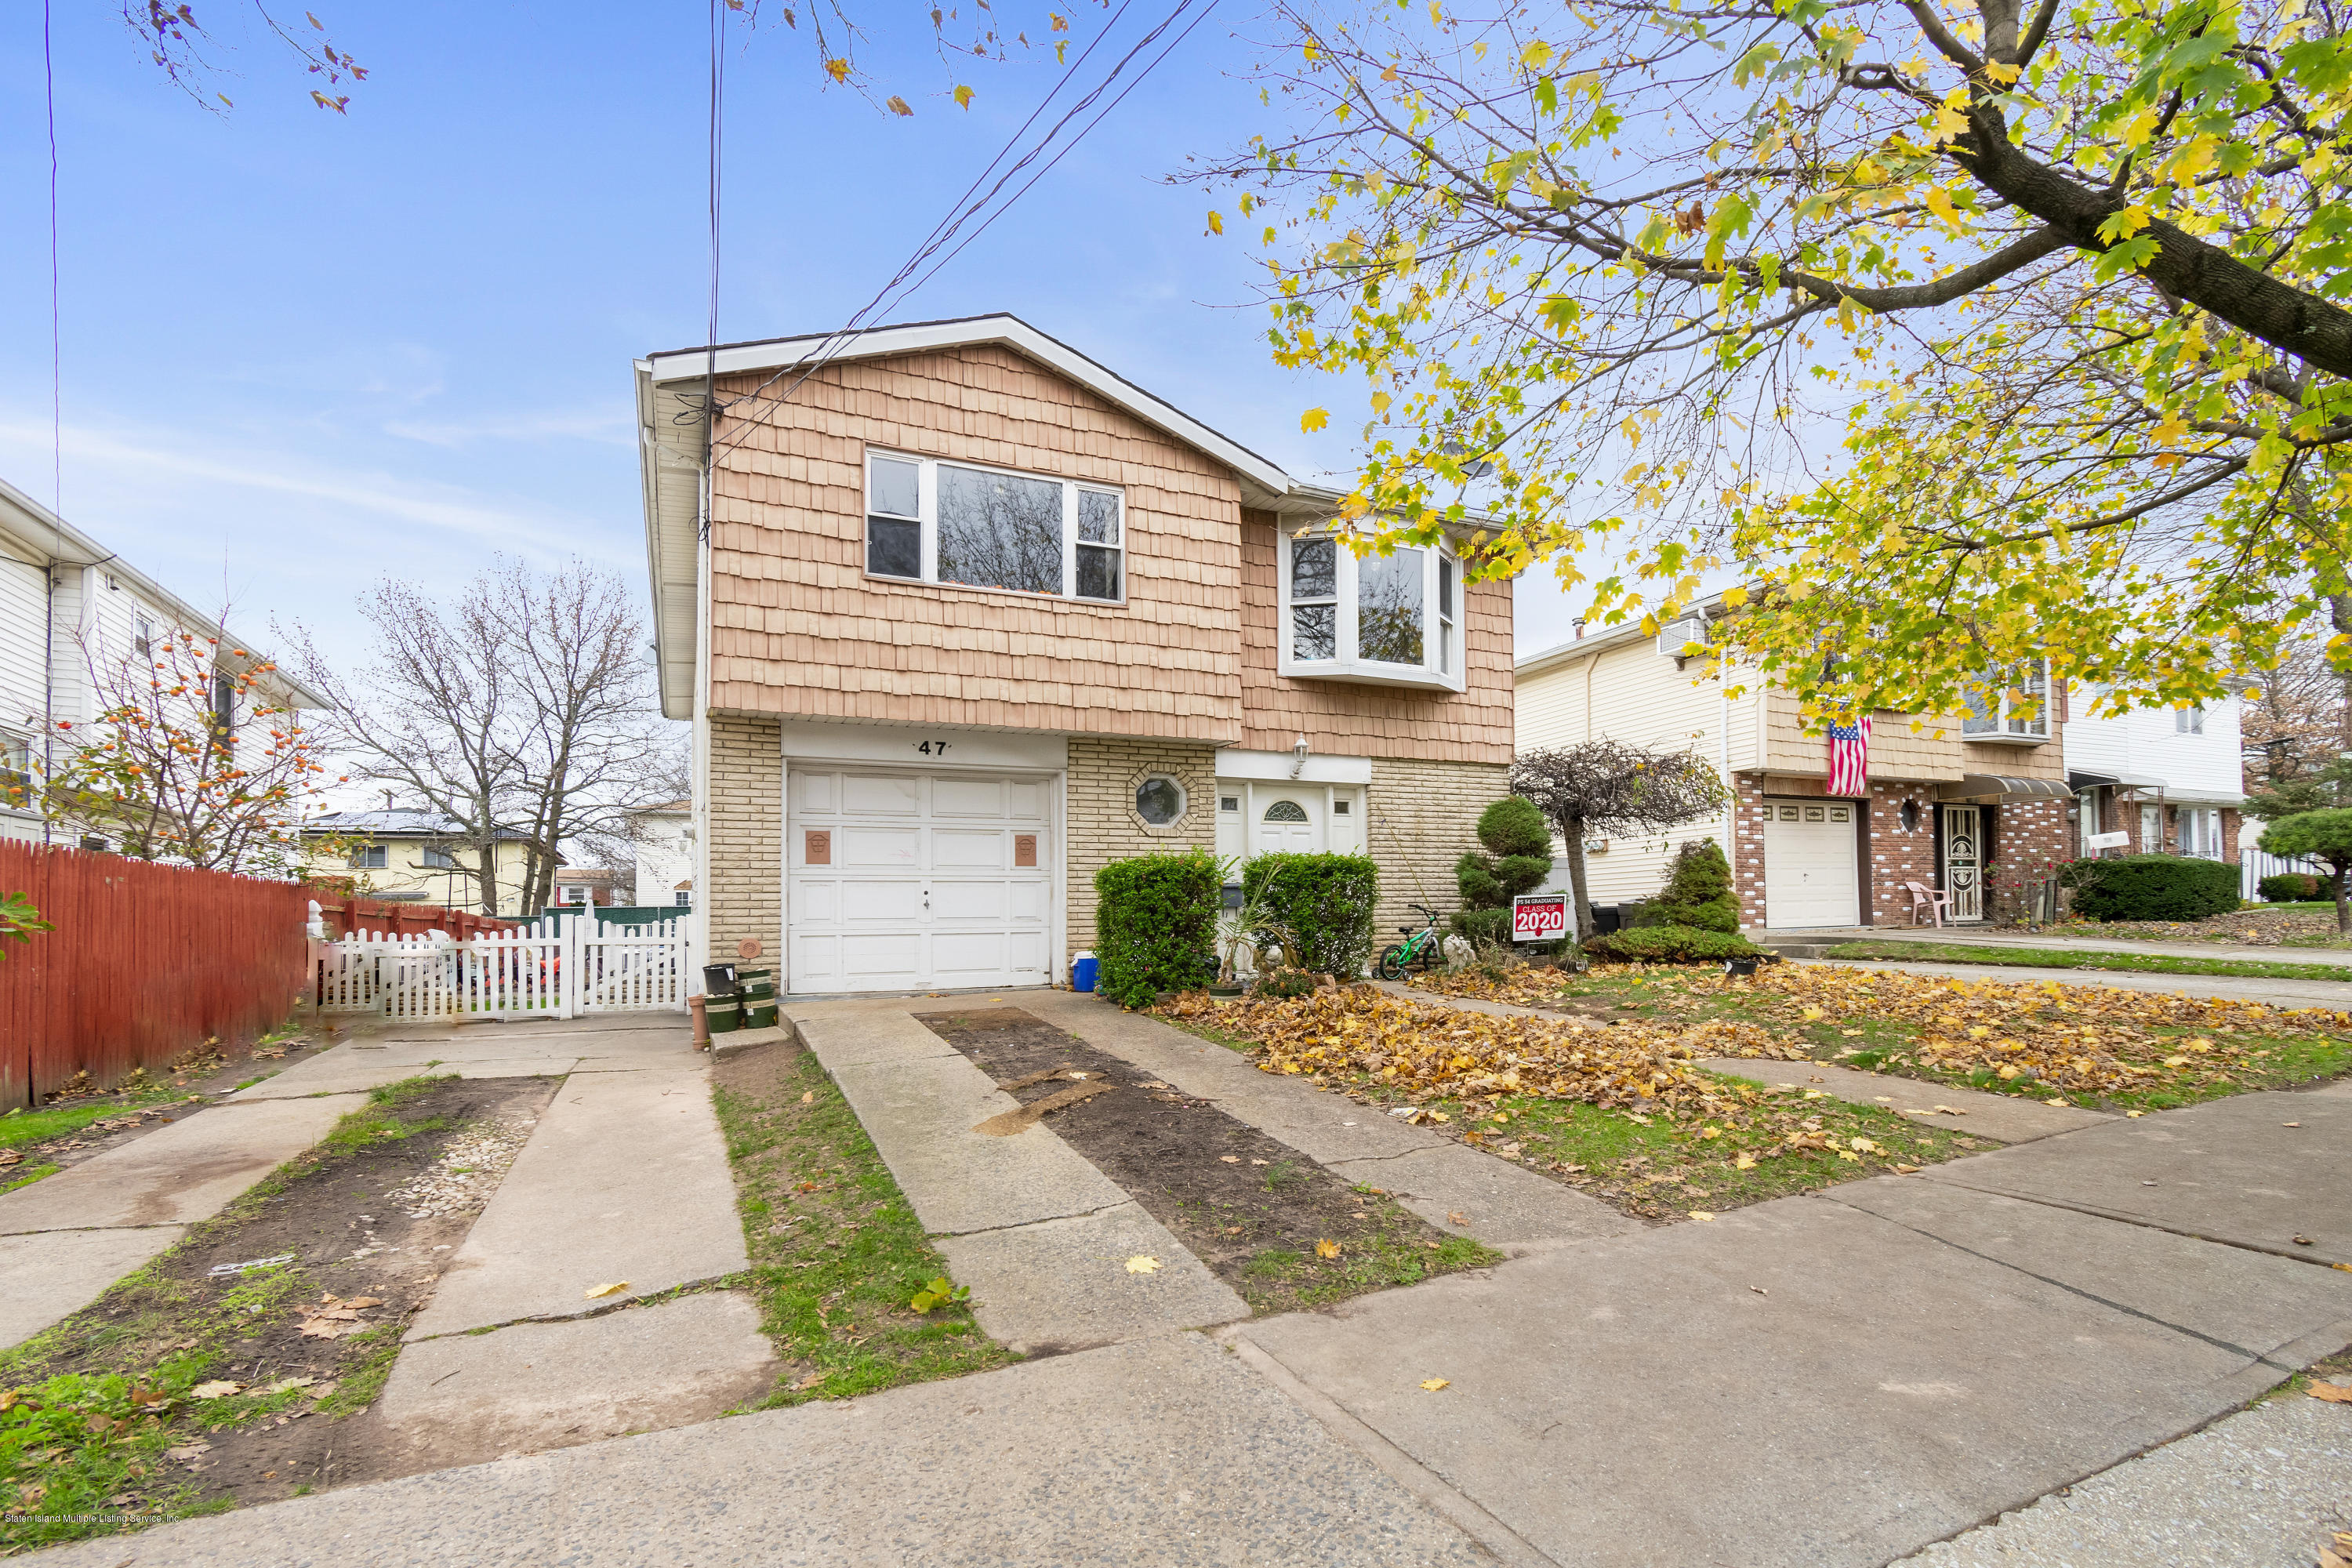 Two Family - Detached 47 Drysdale Street  Staten Island, NY 10314, MLS-1142296-2